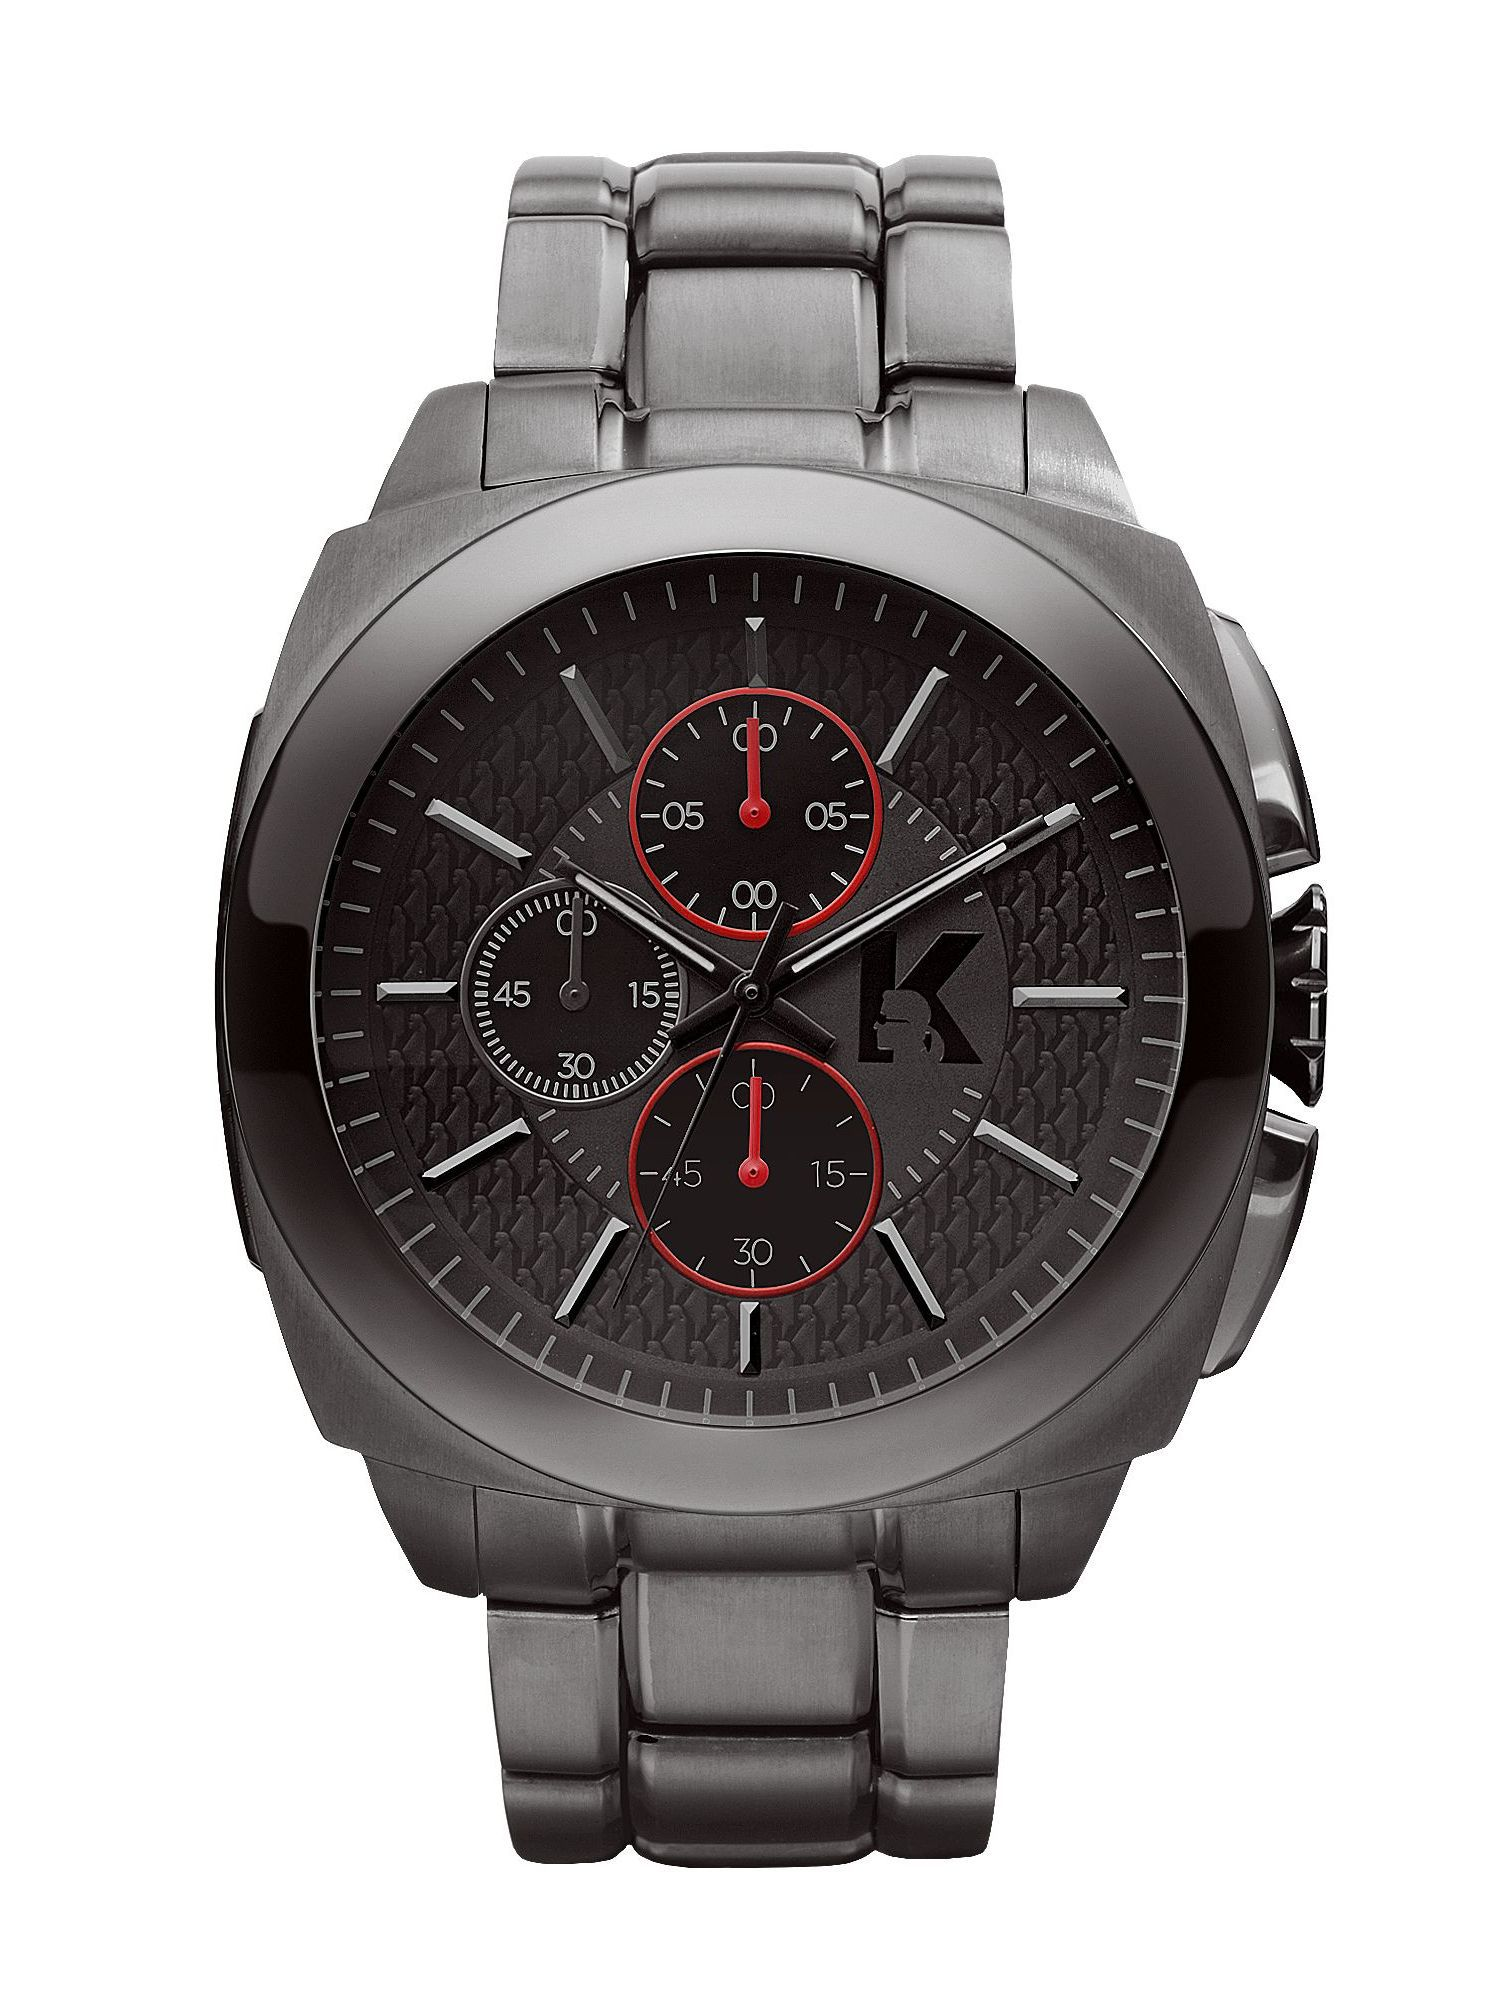 KL1603 SPORT Stainless Steel Mens Watch